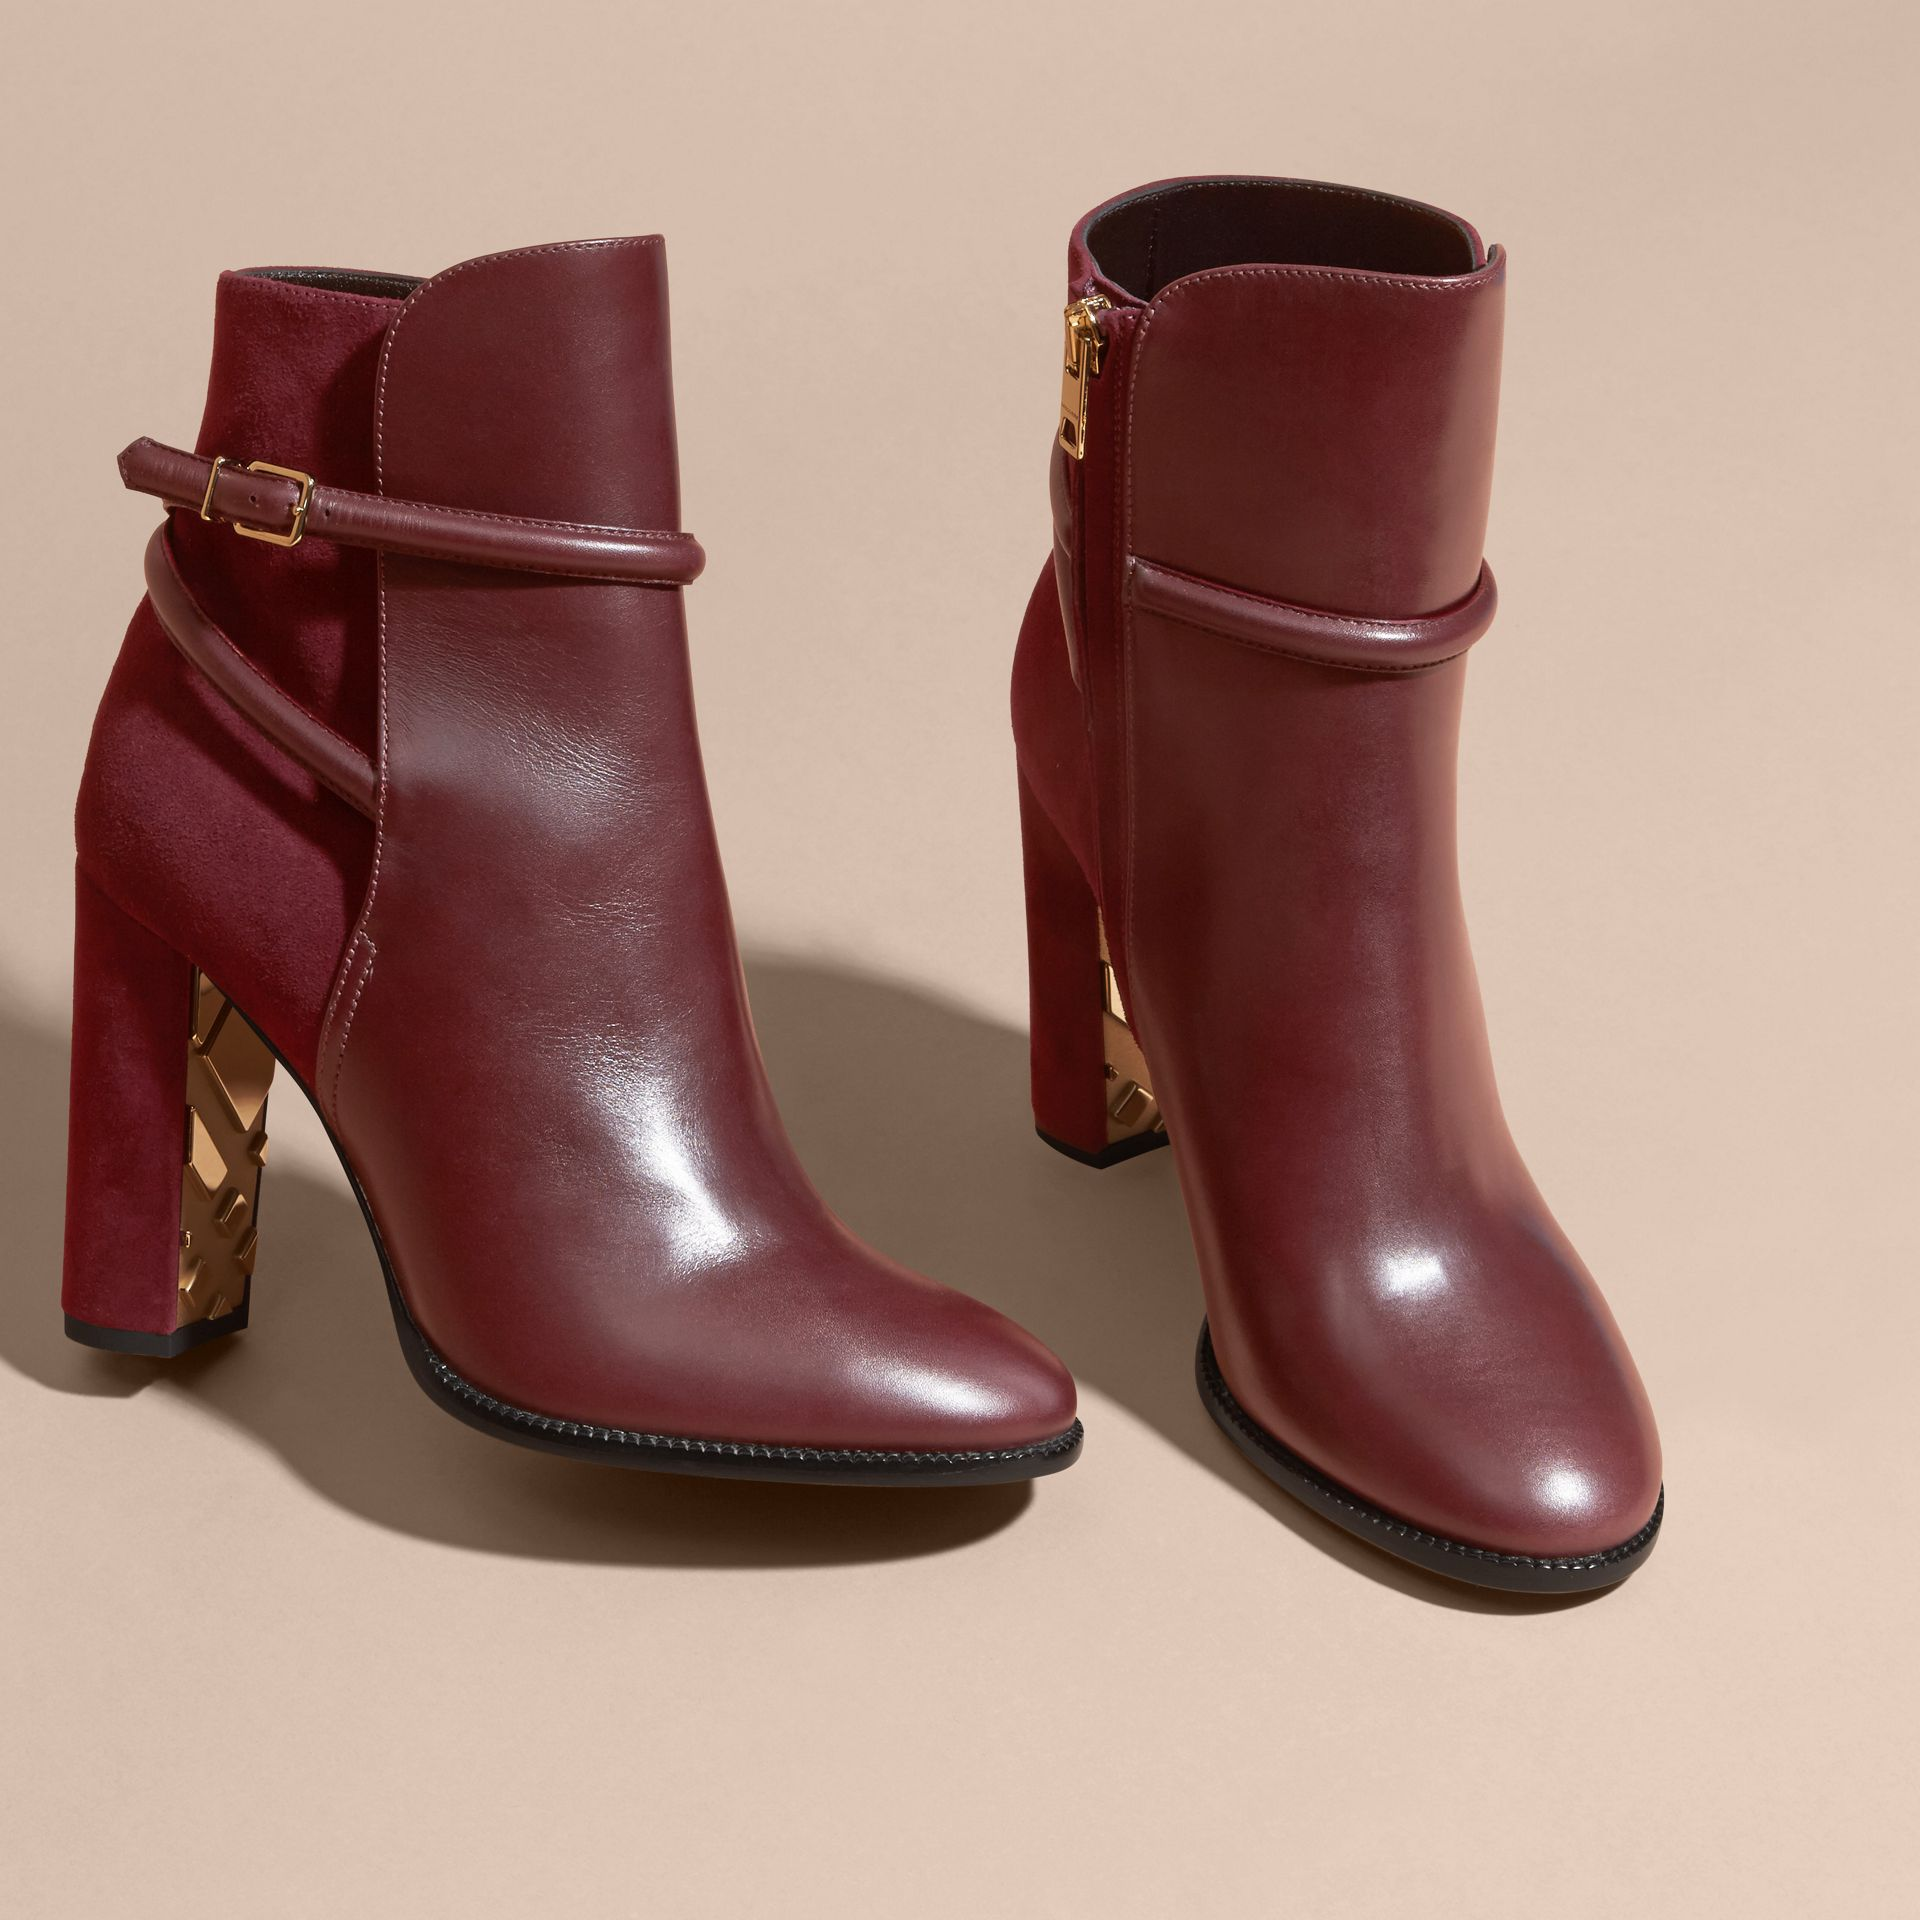 Oxblood Strap Detail Leather and Suede Ankle Boots - gallery image 3